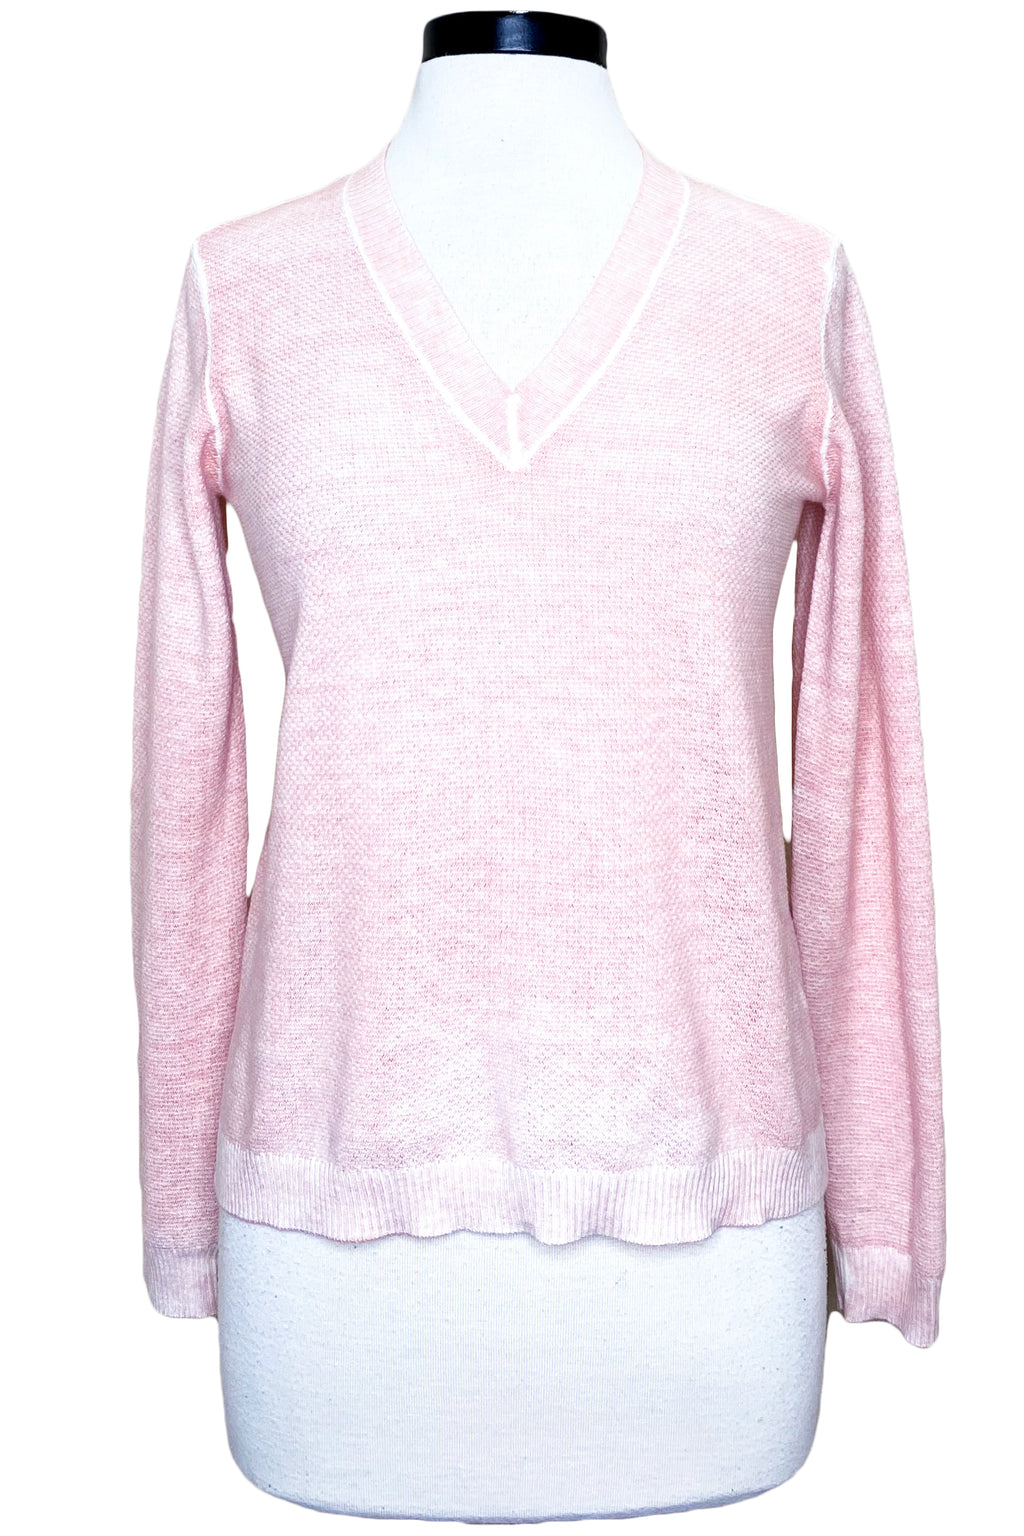 minnie rose reverse print v-neck pink sand